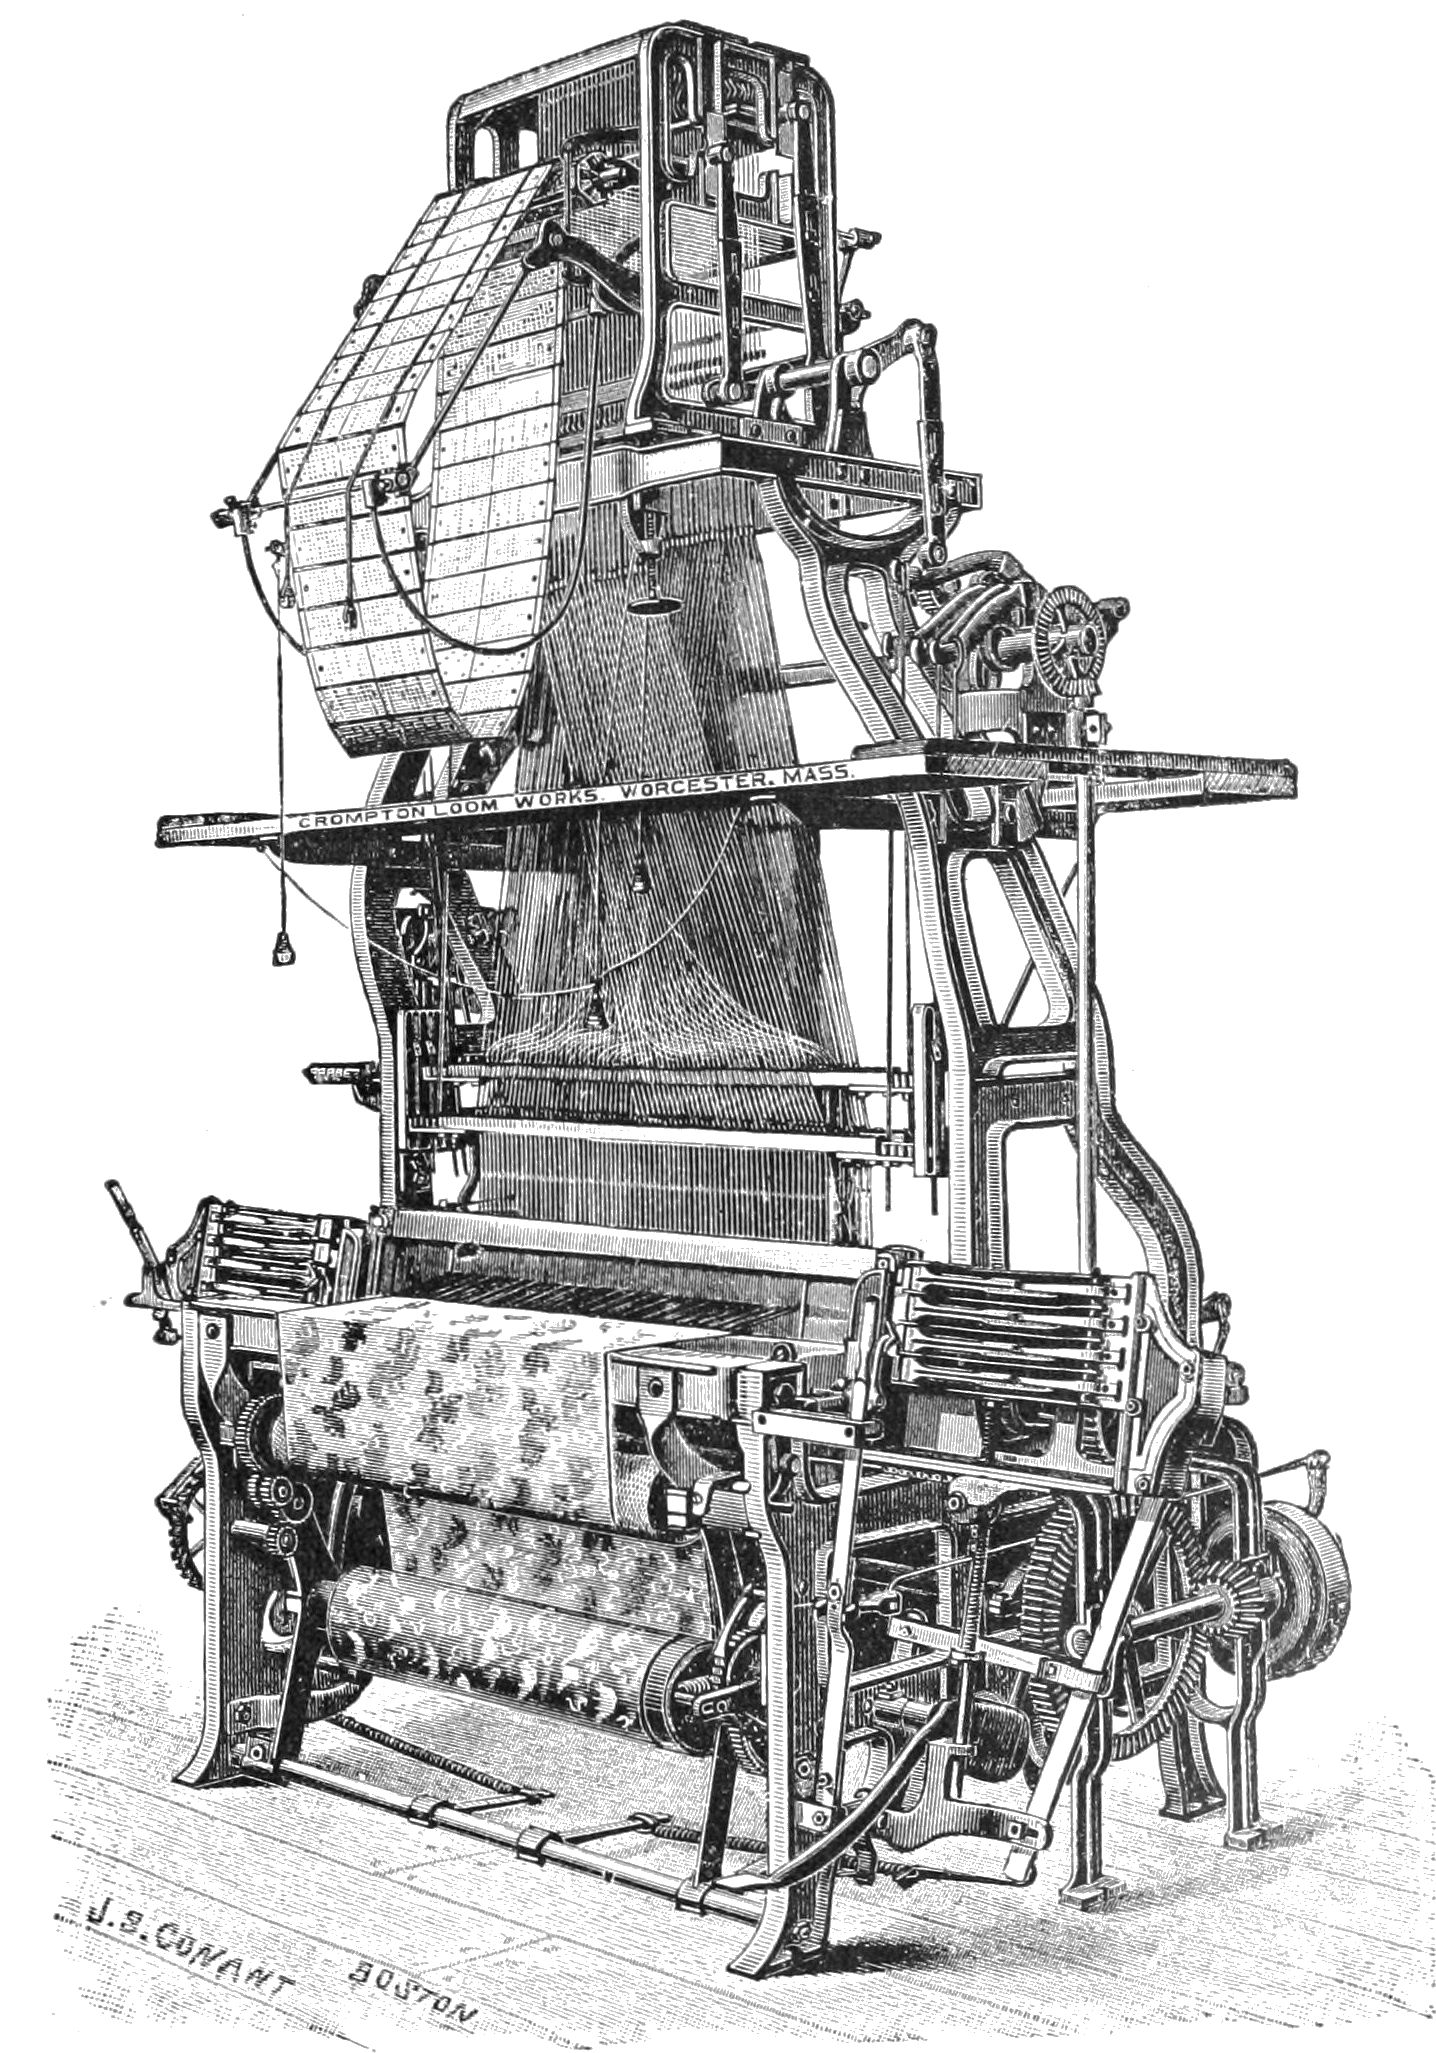 Spe 18483 as well Watch likewise Rapier Weaving Machine Rapier Loom moreover Top 10 Lego Designs together with 1329. on power loom